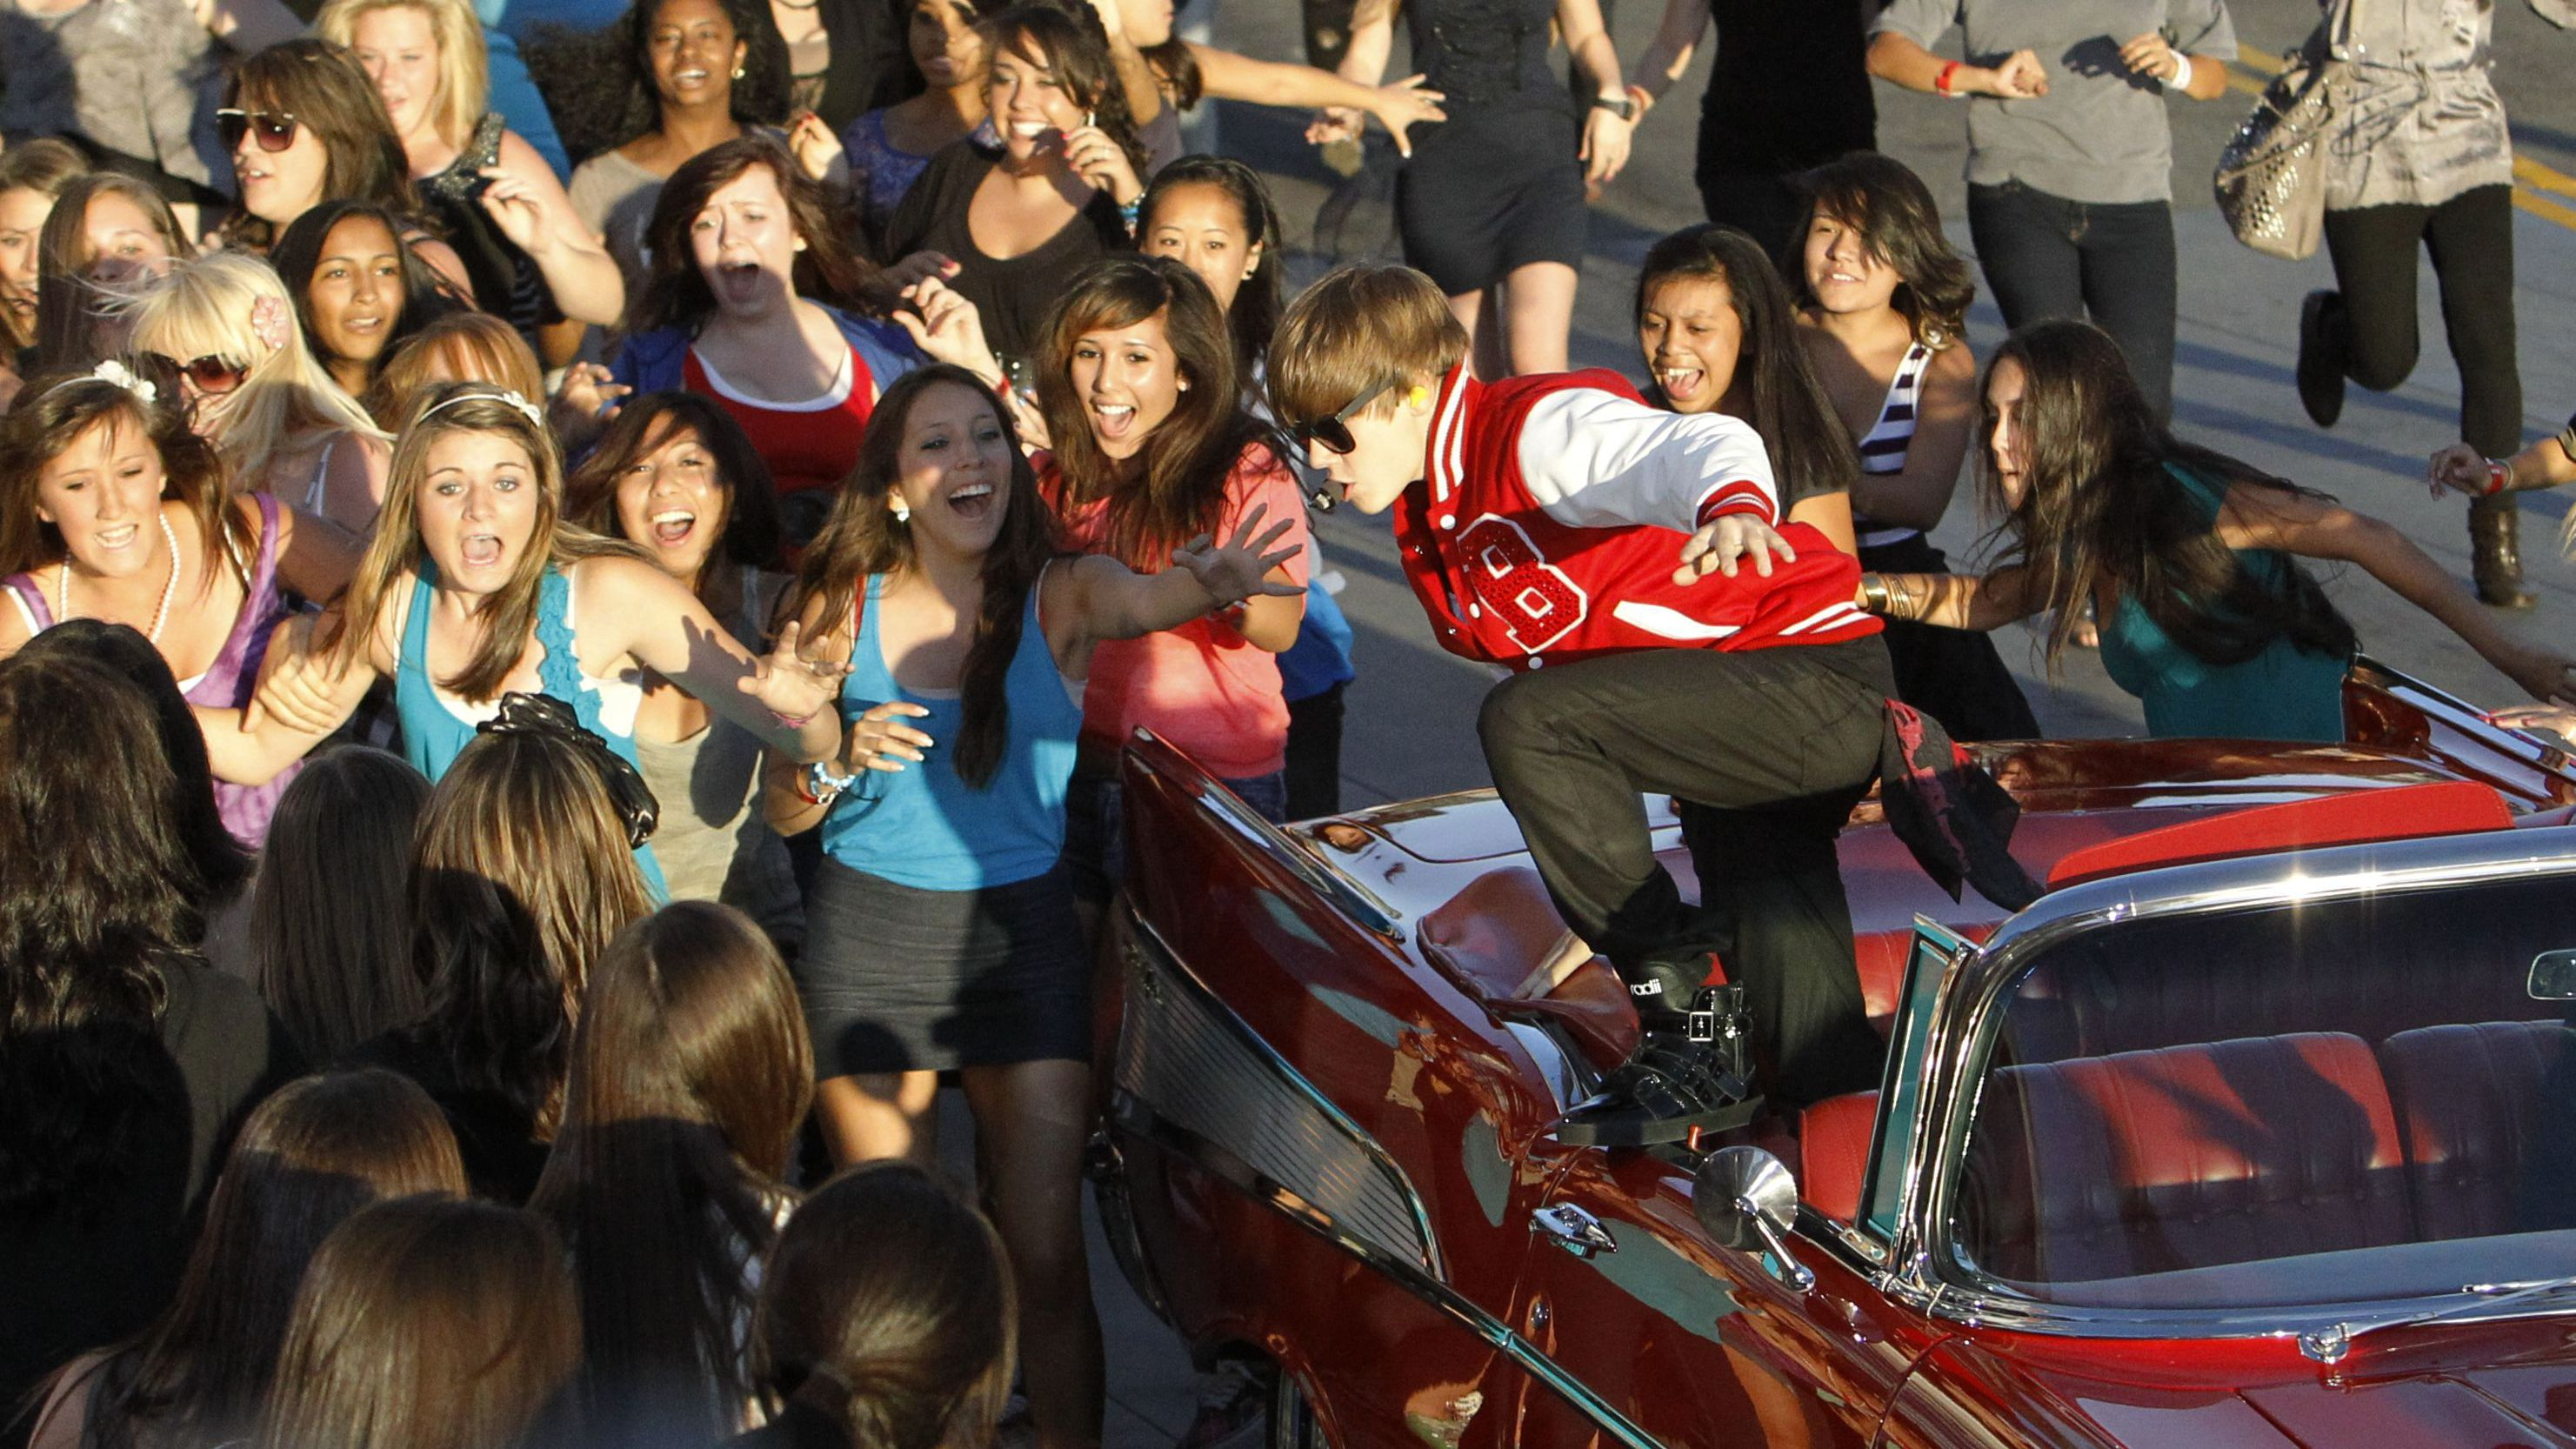 ustin Bieber jumps out of a car before performing a medley of songs at the 2010 MTV Video Music Awards in Los Angeles, California, September 12, 2010. REUTERS/Mario Anzuoni (UNITED STATES - Tags: ENTERTAINMENT IMAGES OF THE DAY) (MTV/ARRIVALS)